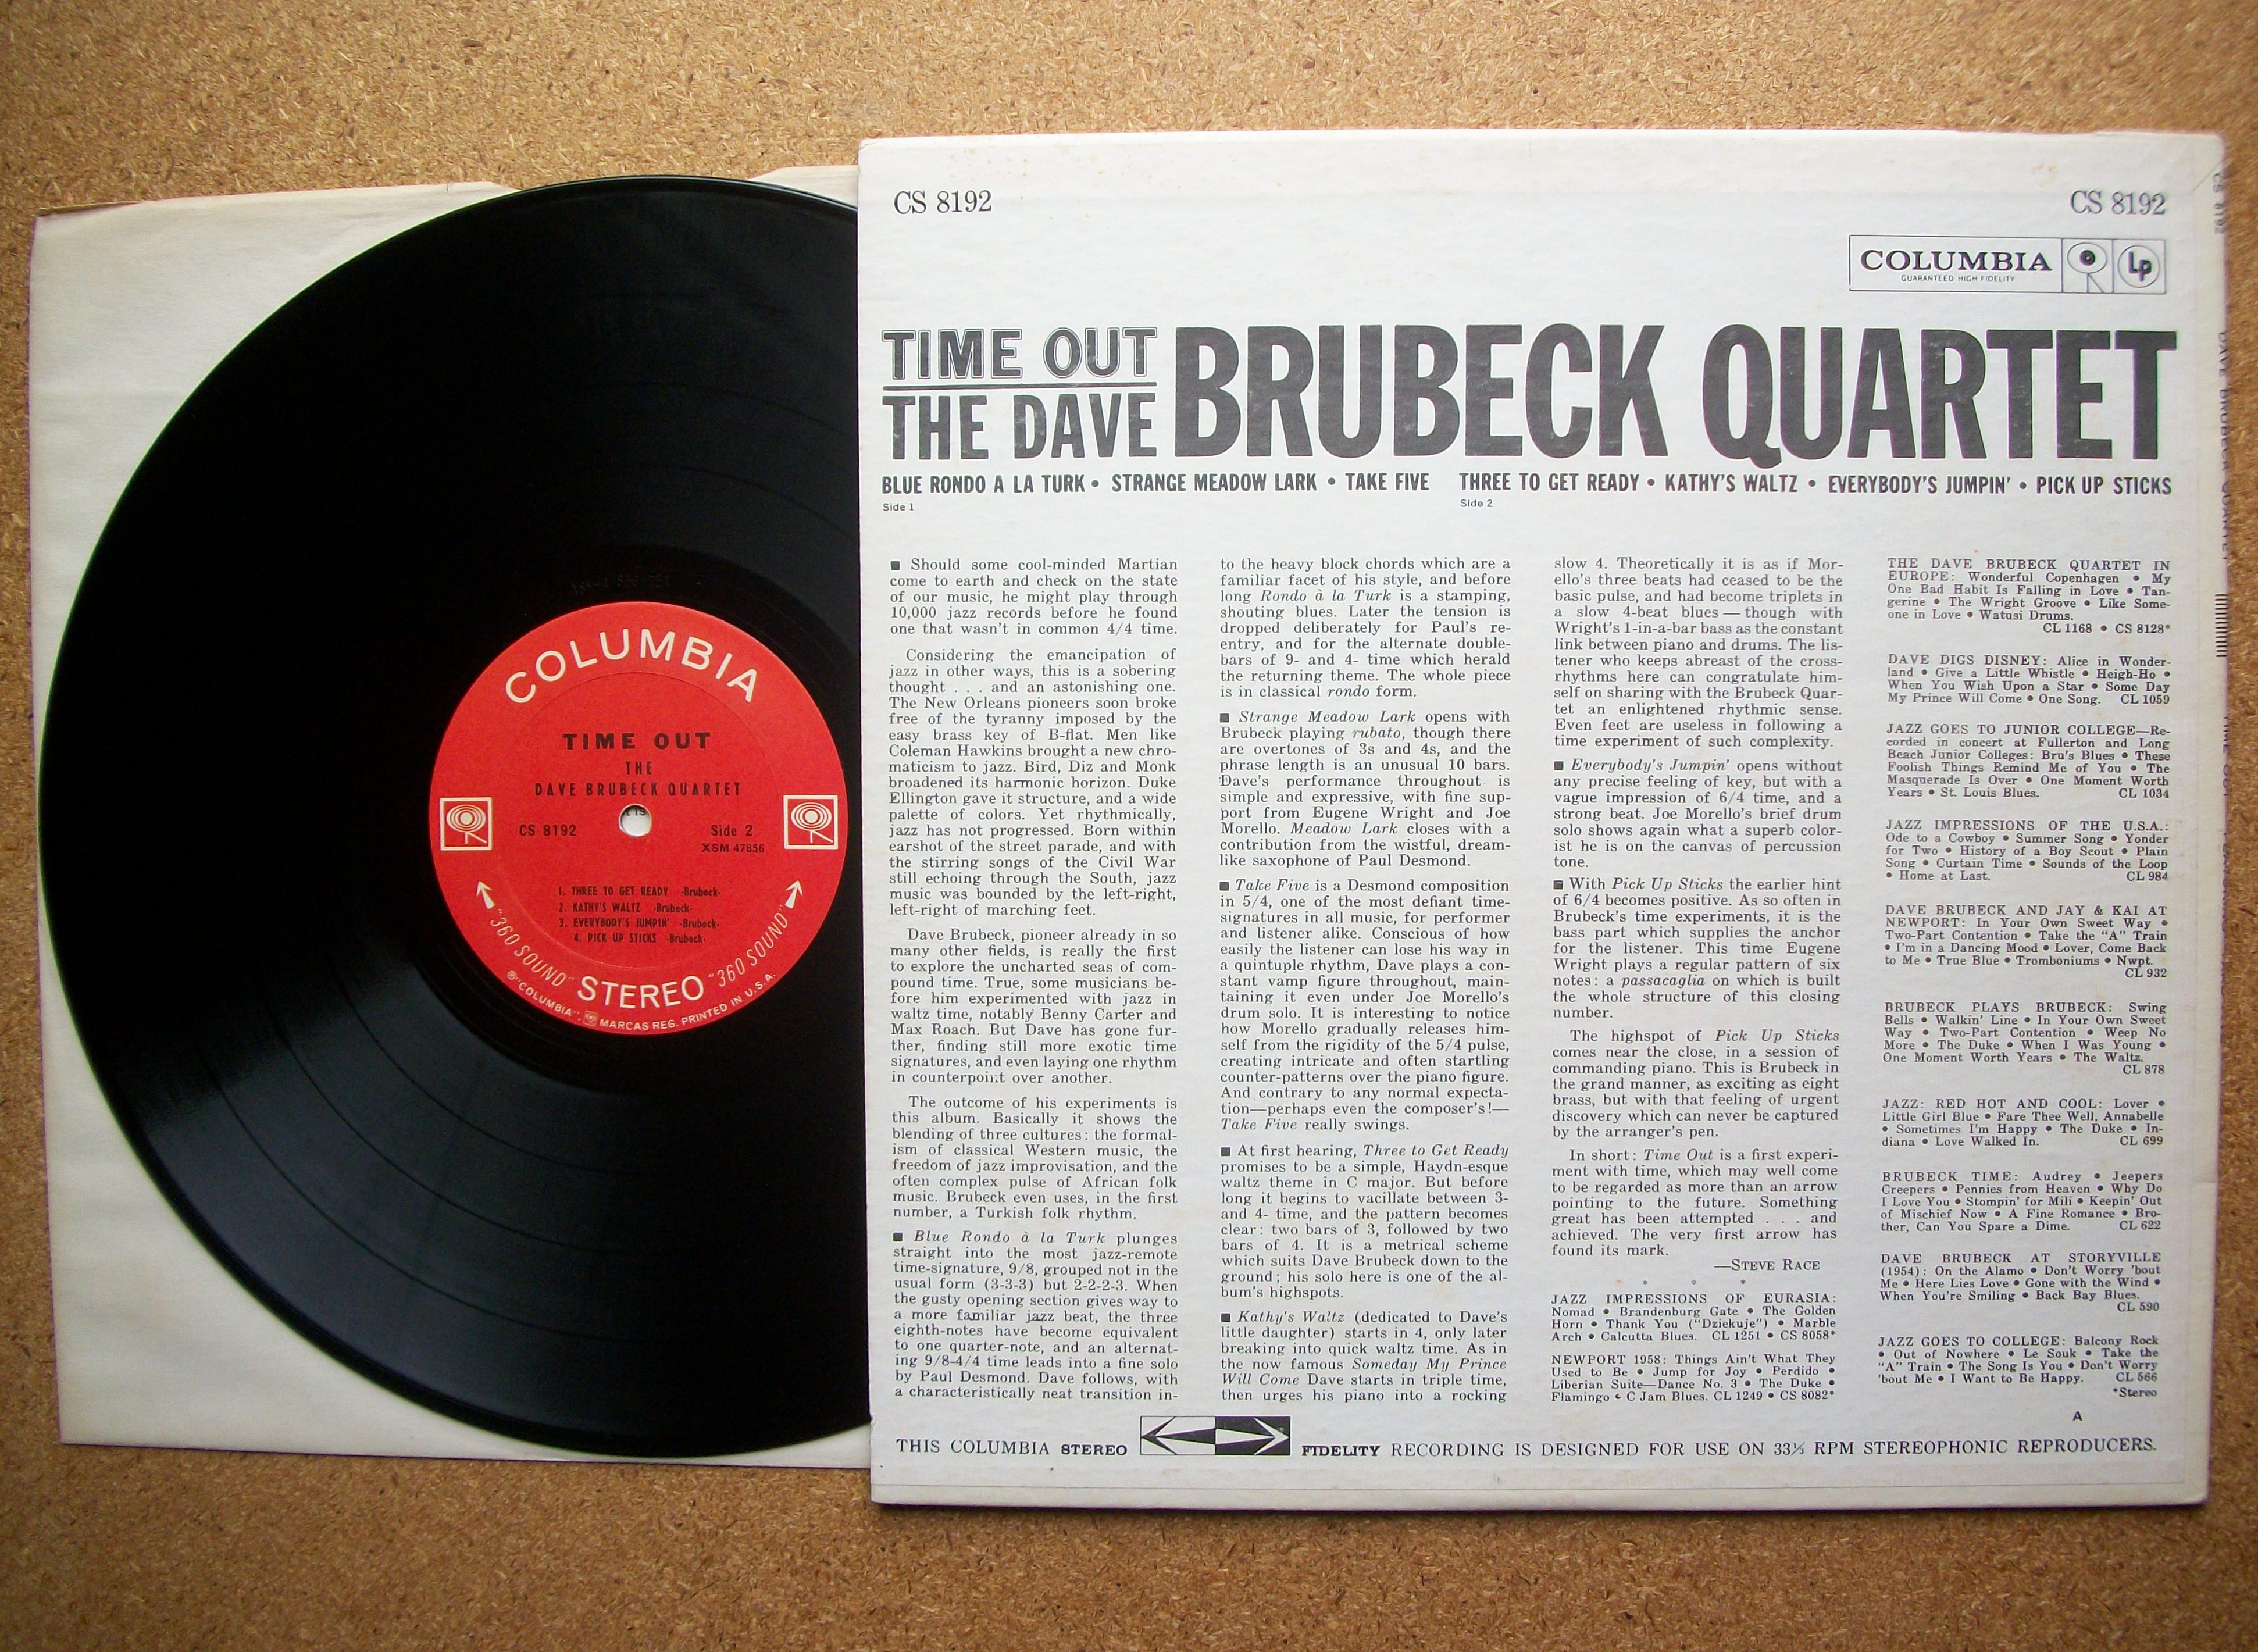 performance style of dave brubeck Masterworks chorale - the light in the wilderness performance / program notes concert: may 16, 2014 in 1967 jazz great dave brubeck broke up his famous quartet to fulfill his ambitions as a composer of music for the concert hall.